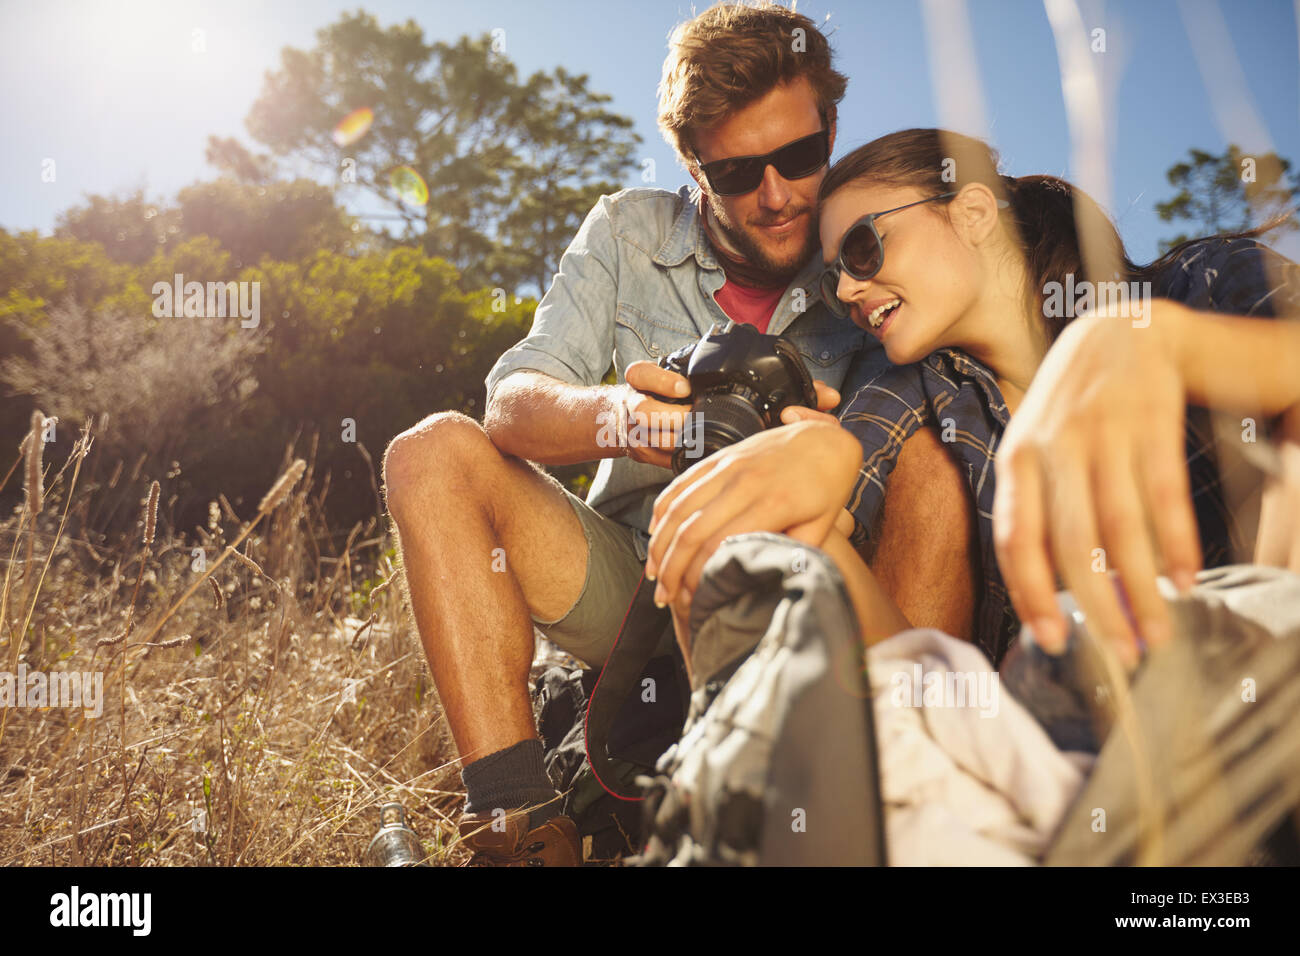 Outdoor shot of hiker couple looking at their camera on a summers day. Caucasian man and woman on hiking trip taking - Stock Image